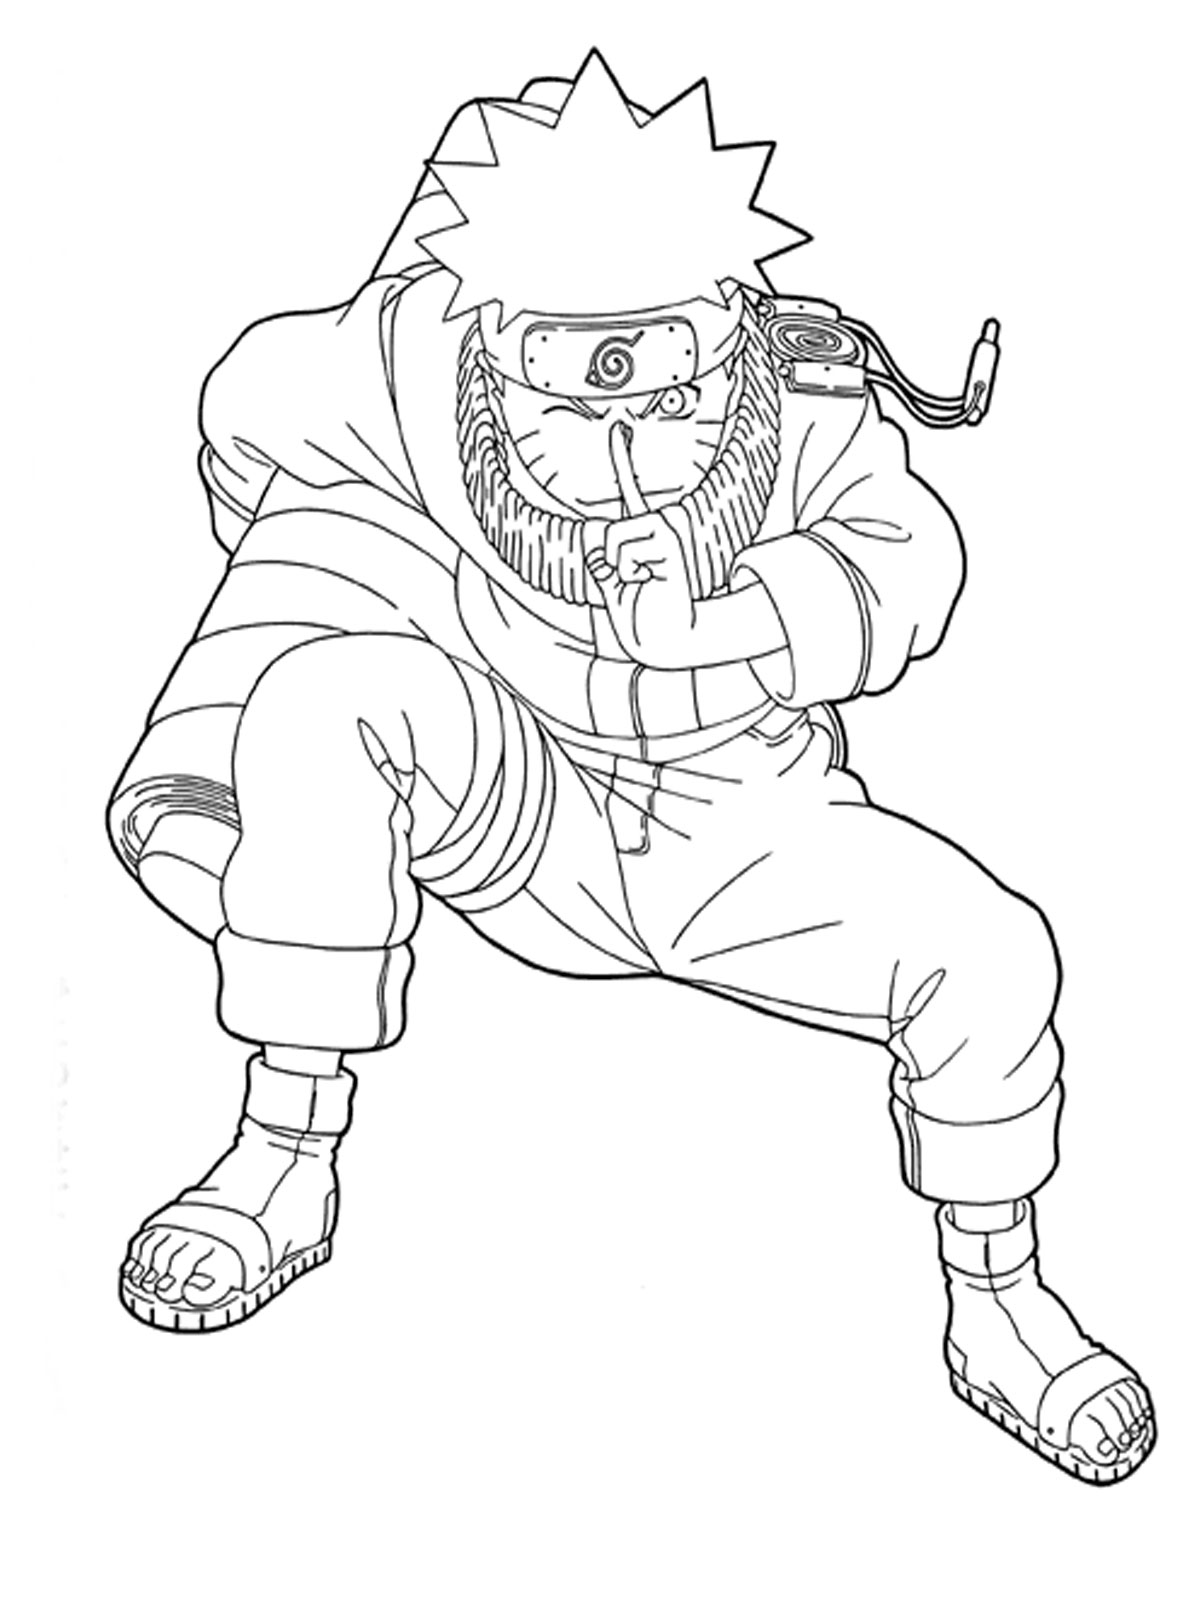 naruto coloring book pages - photo#38